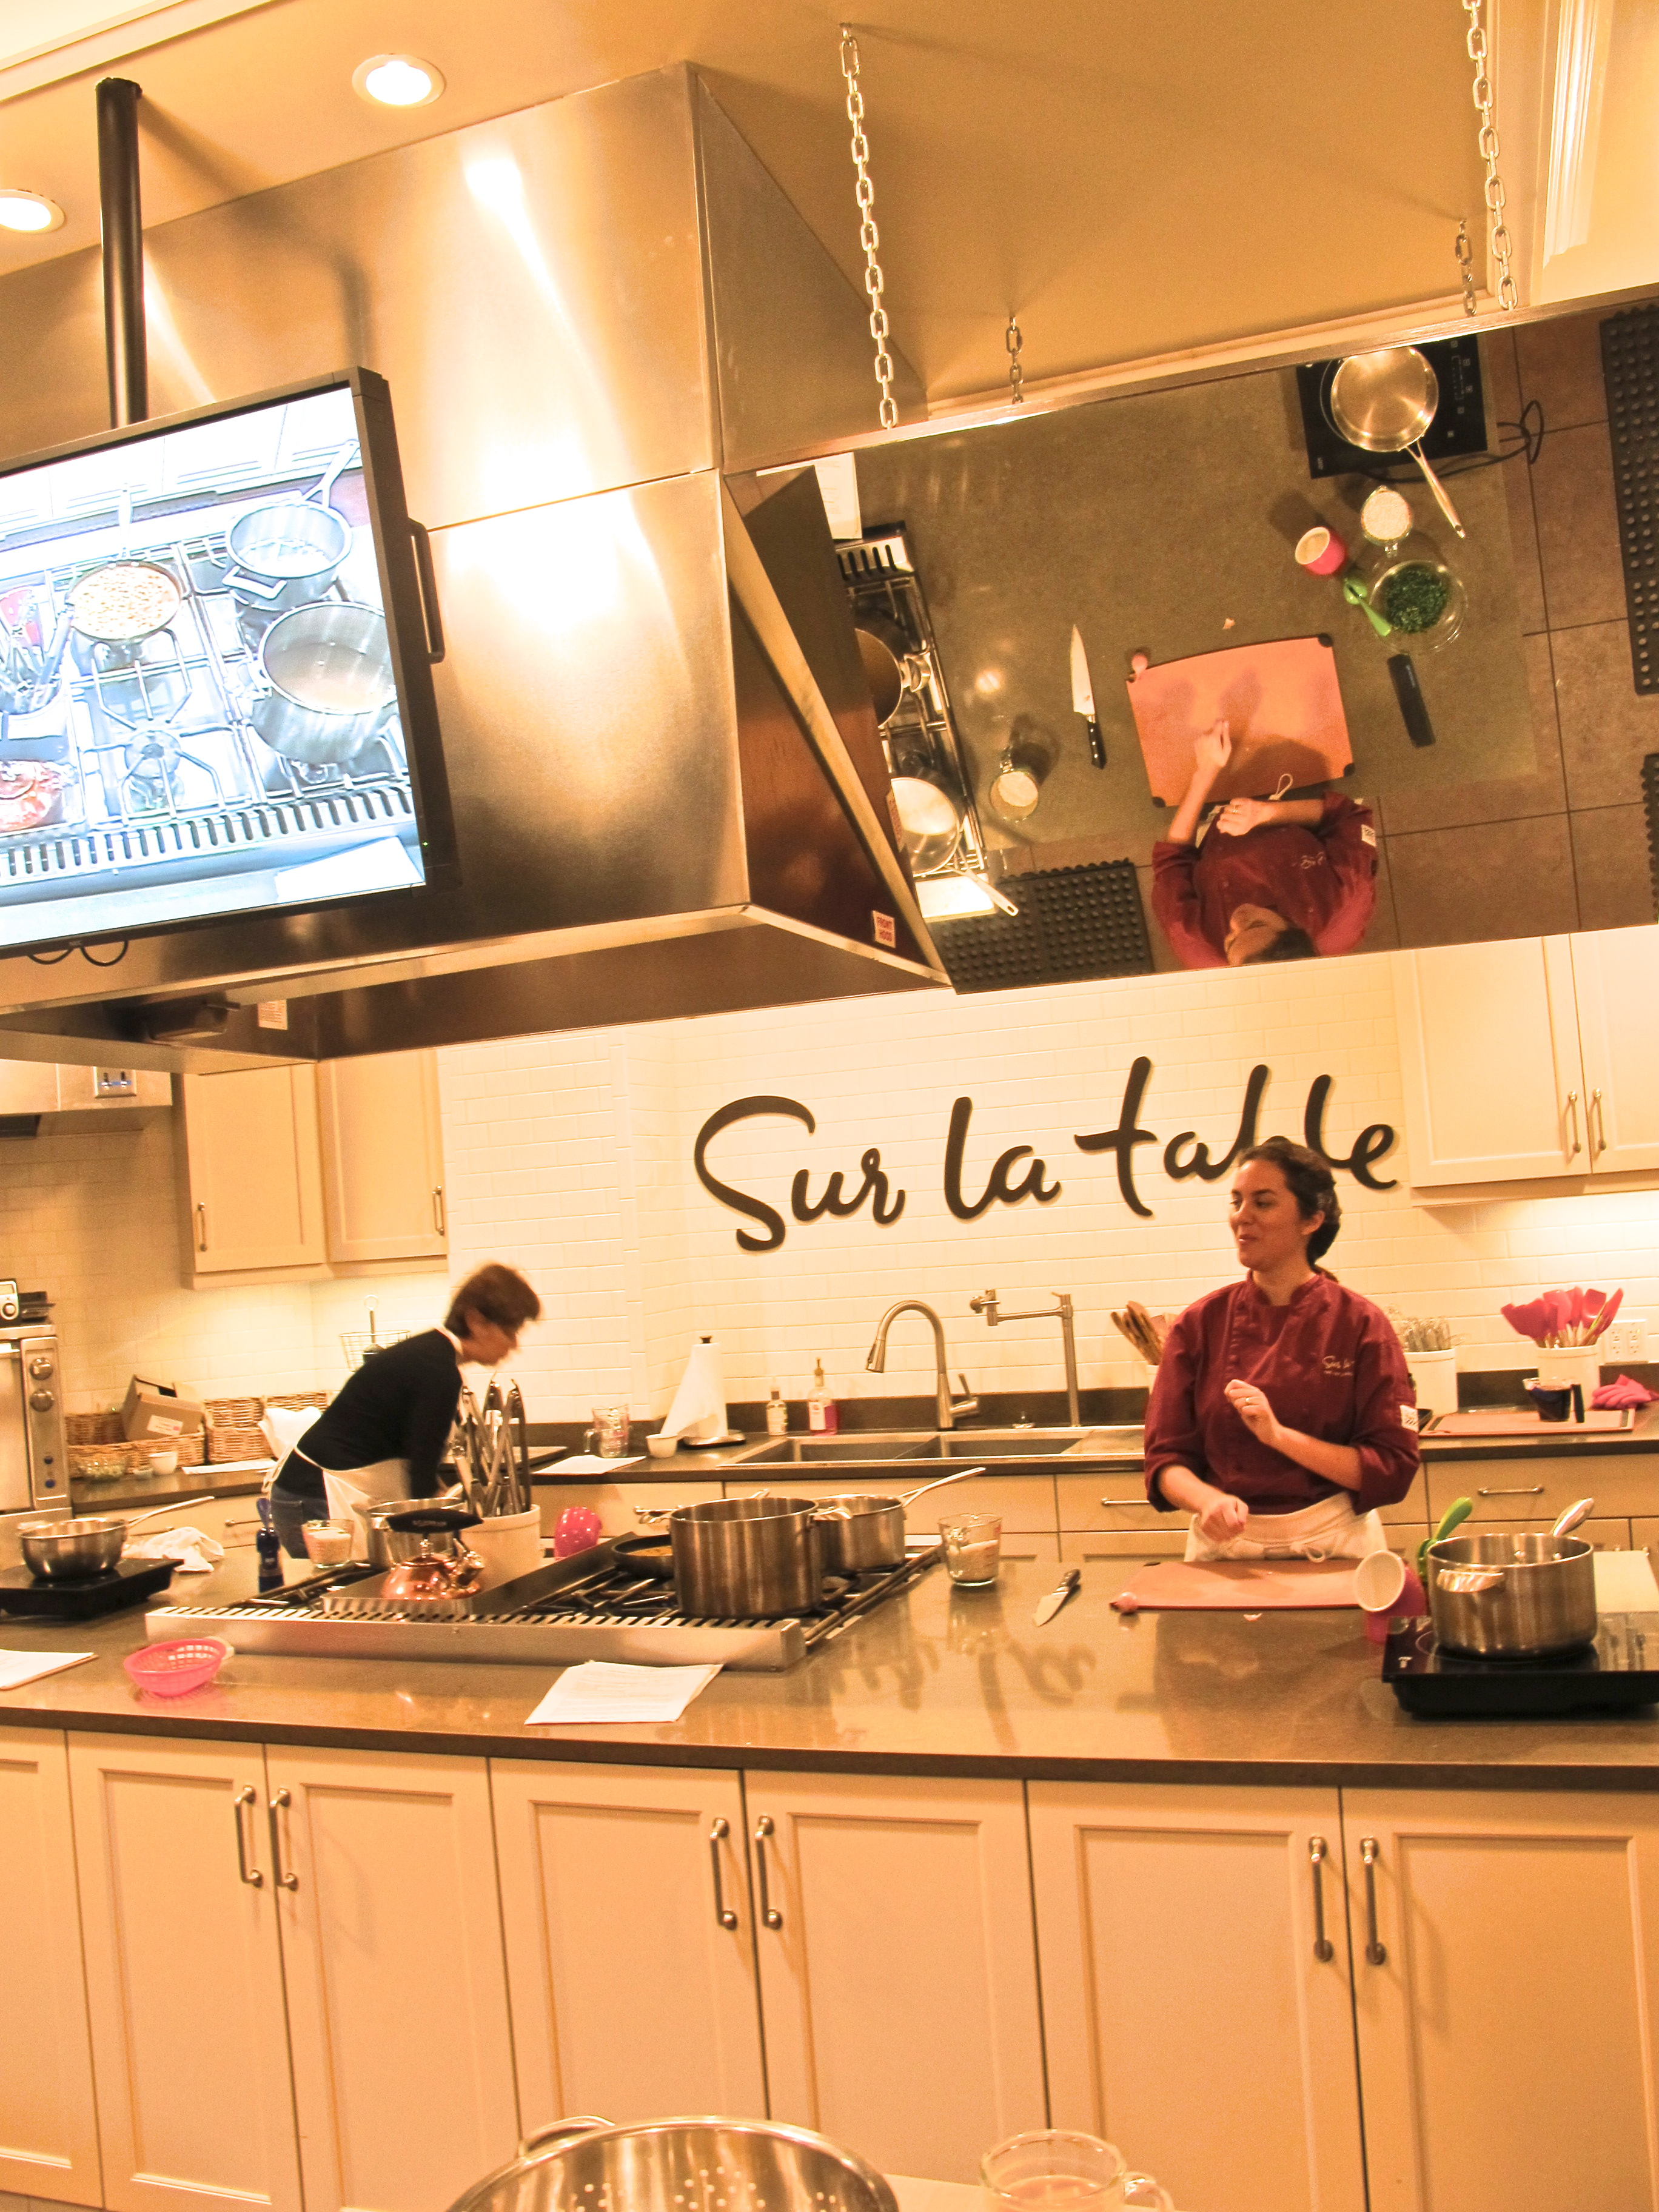 cooking class kitchen table cooking school SUR LA TABLE COOKING CLASS